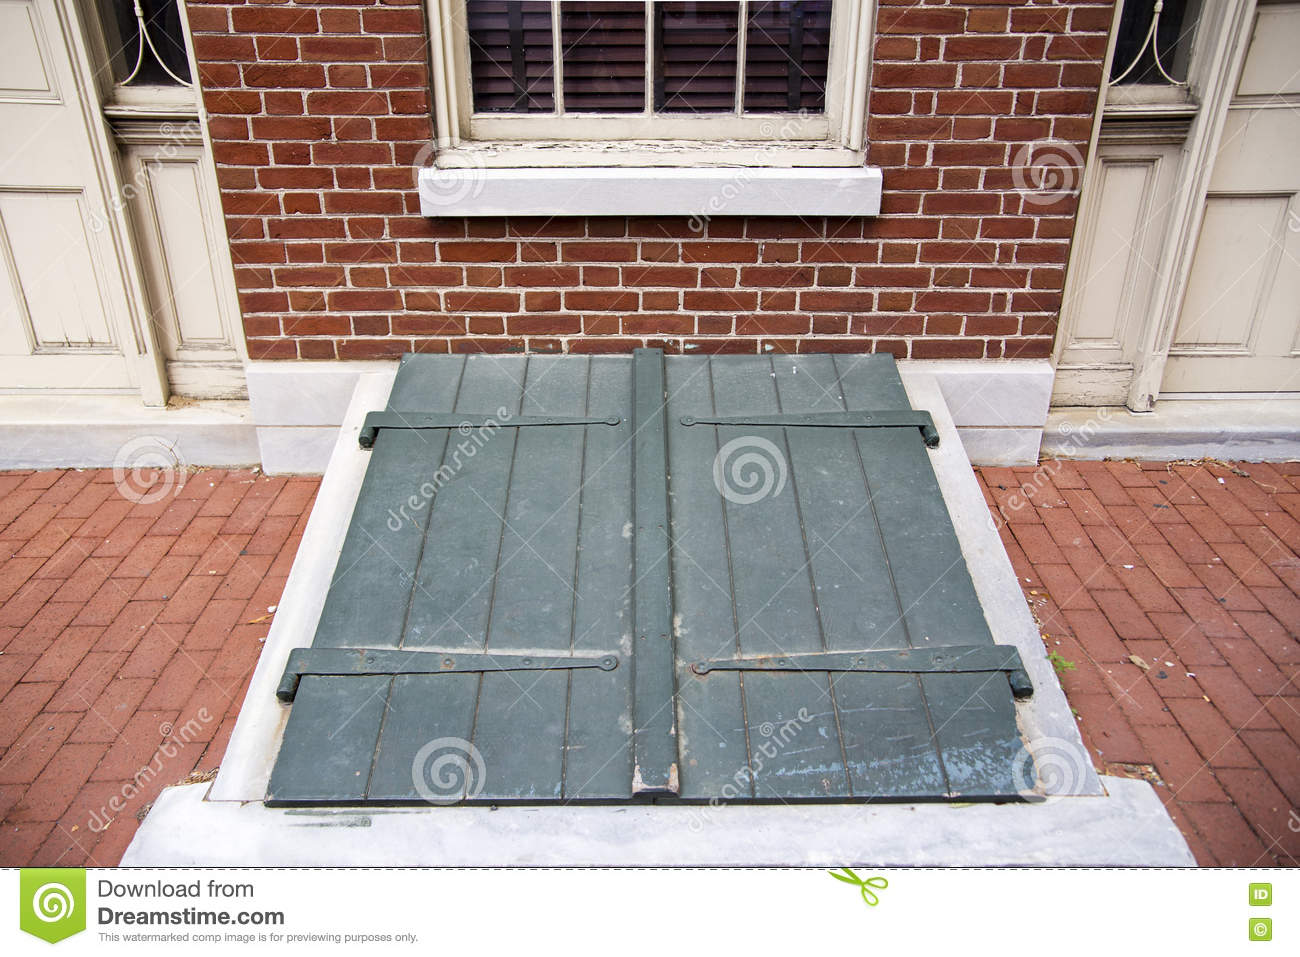 Green Exterior Storm Cellar Doors & Green Exterior Storm Cellar Doors Stock Image - Image of outside ...